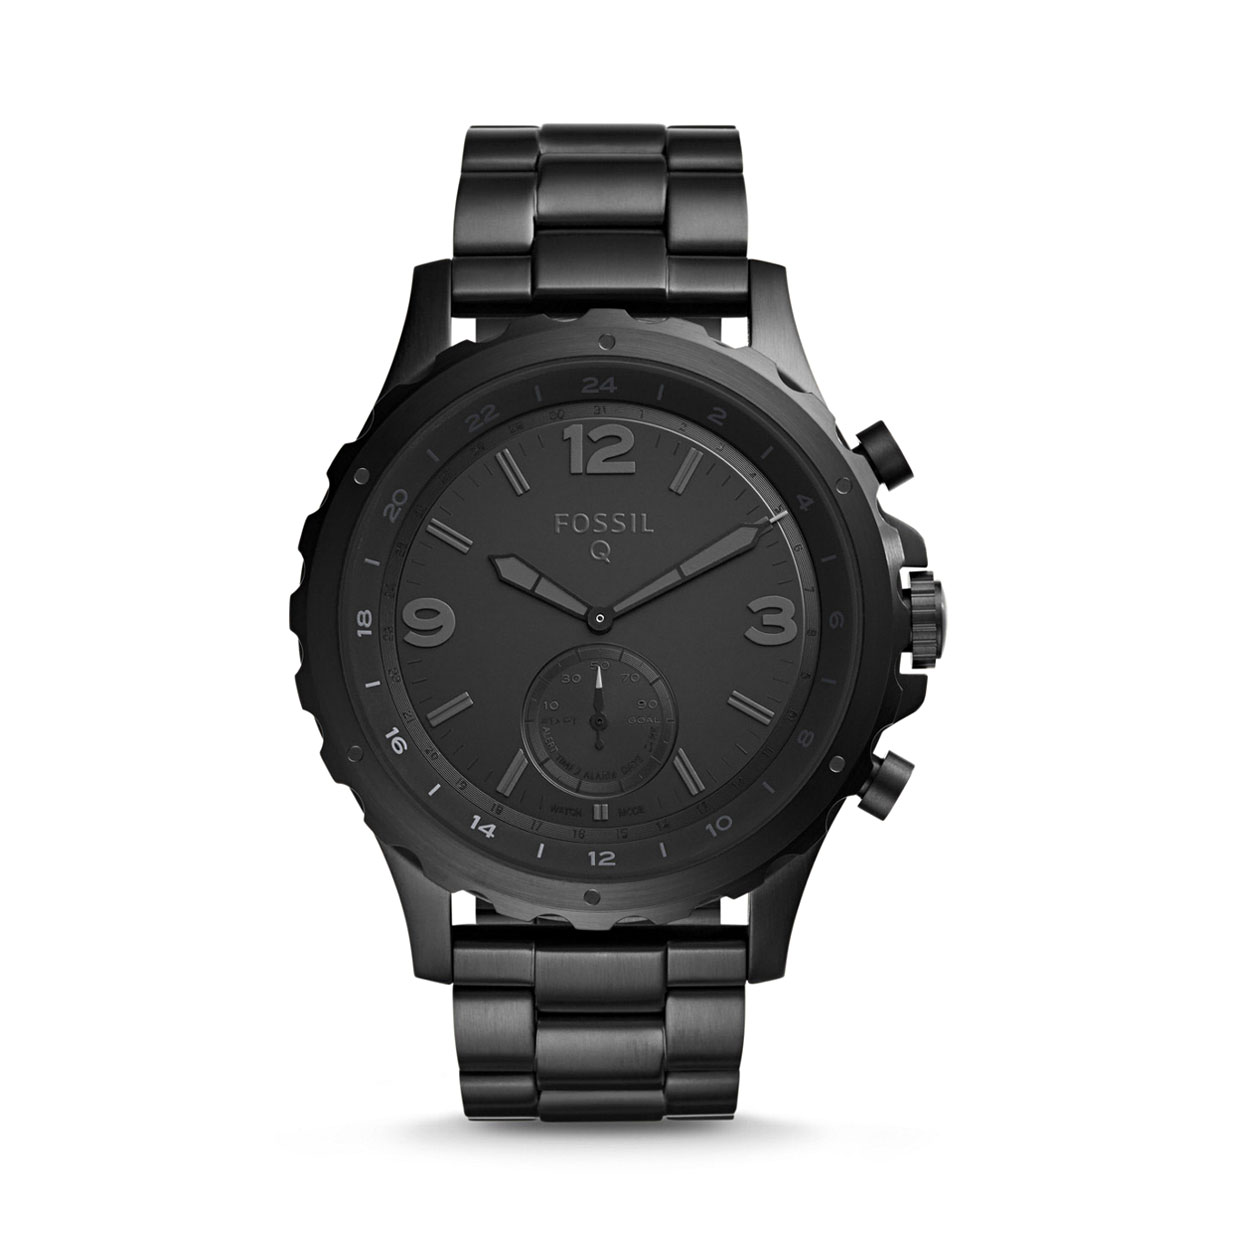 HYBRID SMARTWATCH FOSSIL Q NATE